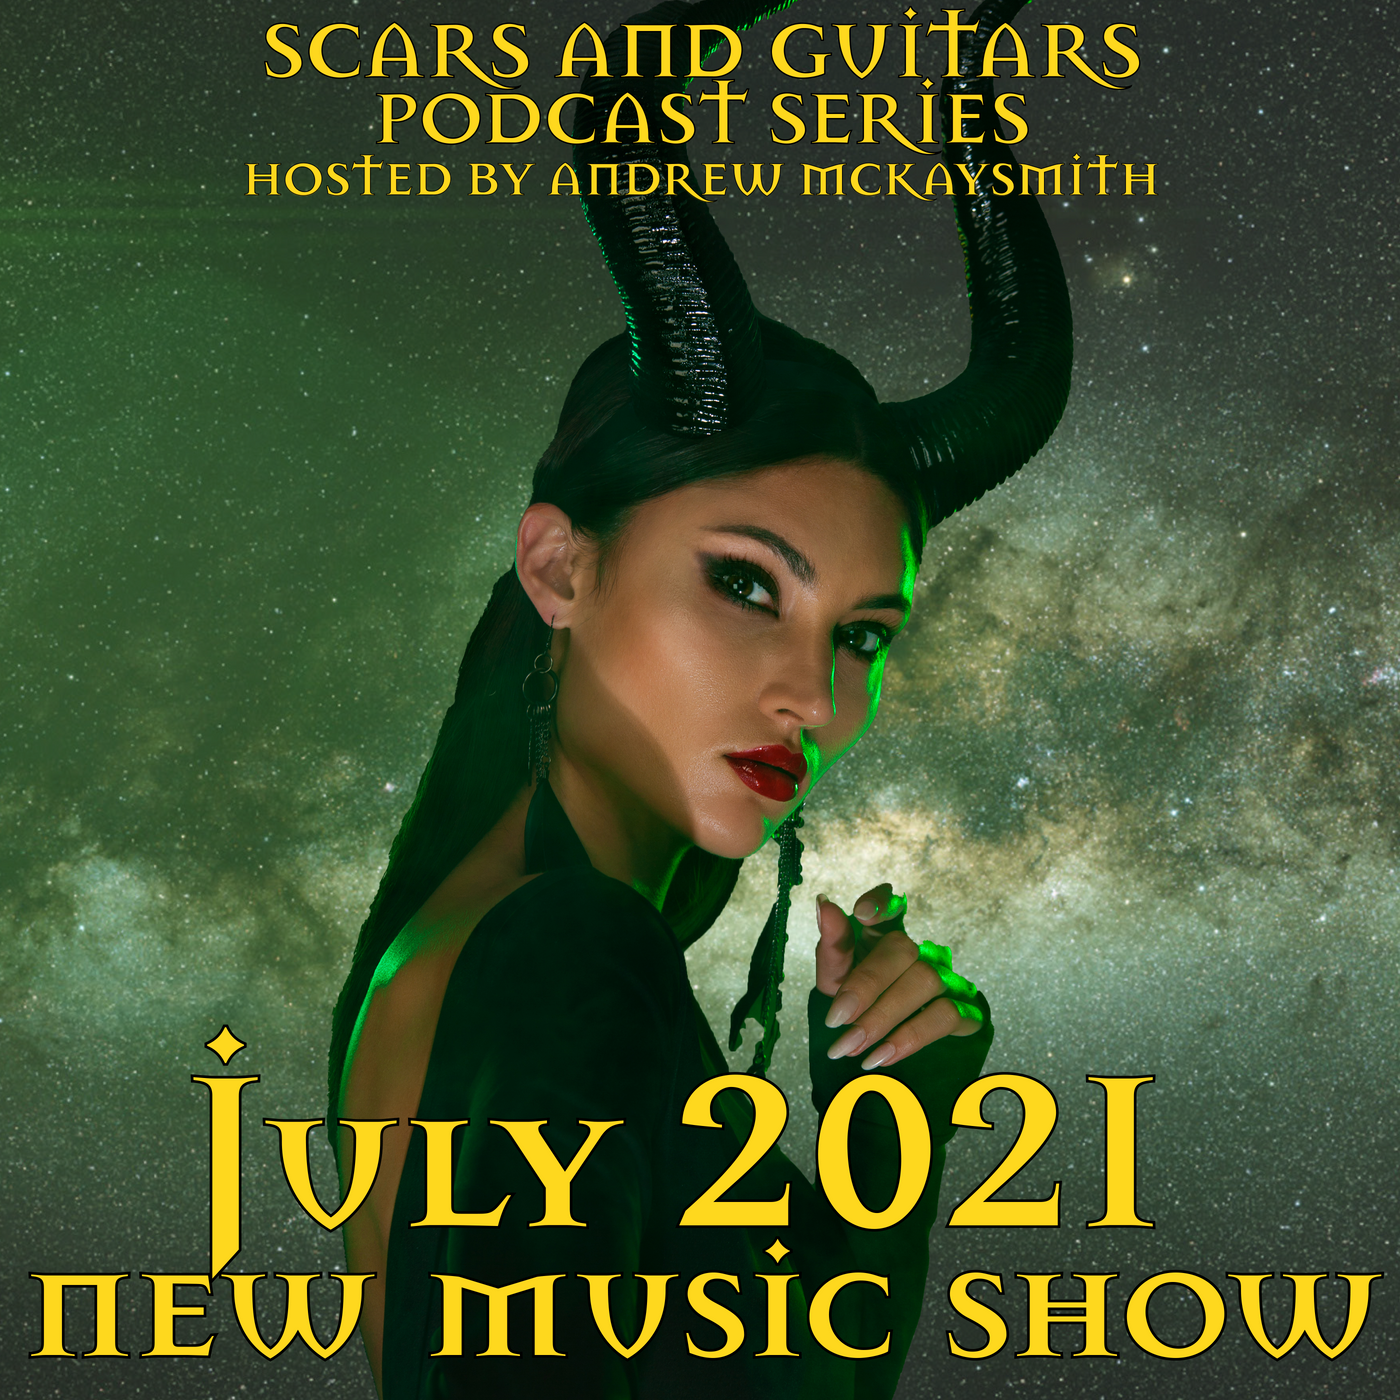 New music show- July 2021